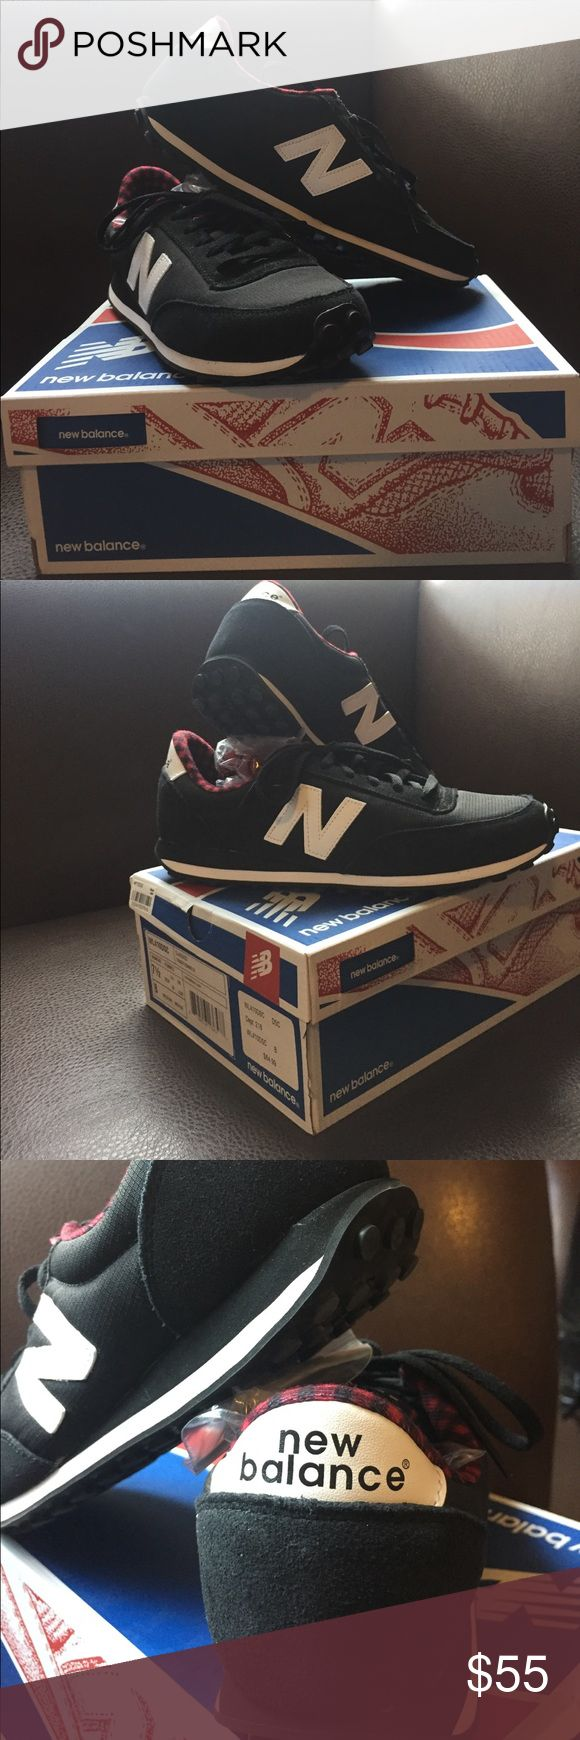 NWT New Balance Sneakers Brand new never worn - just a tad to big for me. Can't return because it's two days past 30 days and don't want store credit :( New Balance Shoes Sneakers